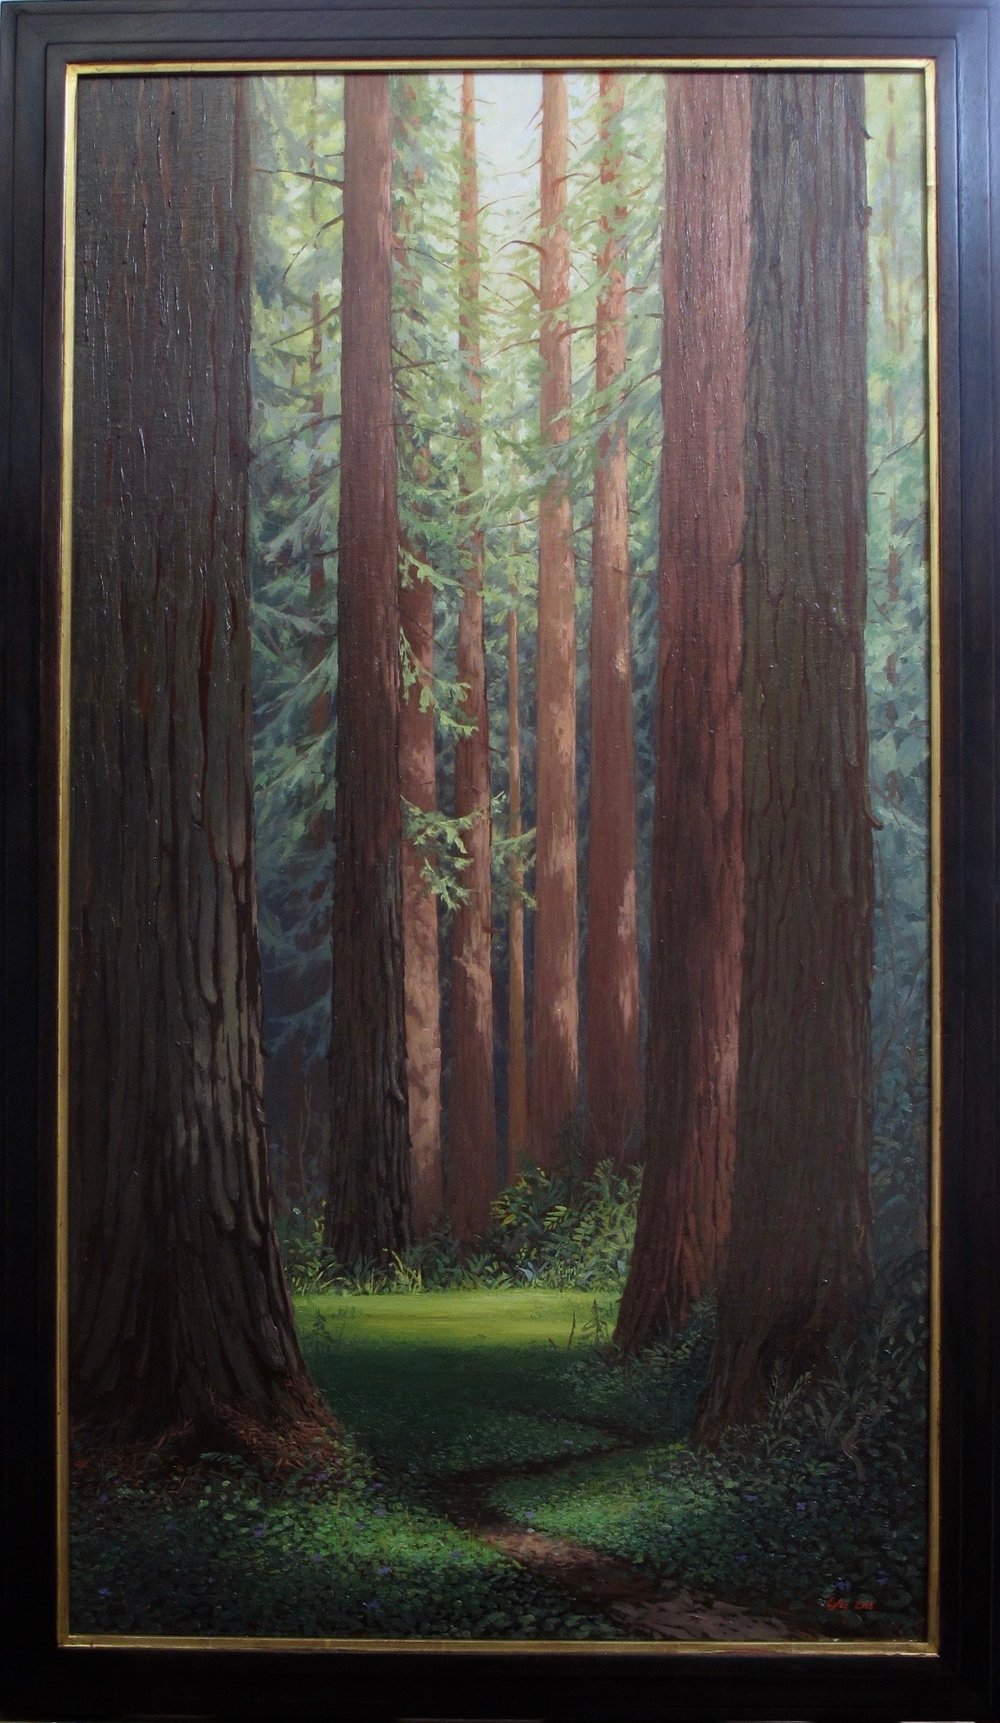 Redwood Forest - 24 x 44 inches, oil on linen, 2018